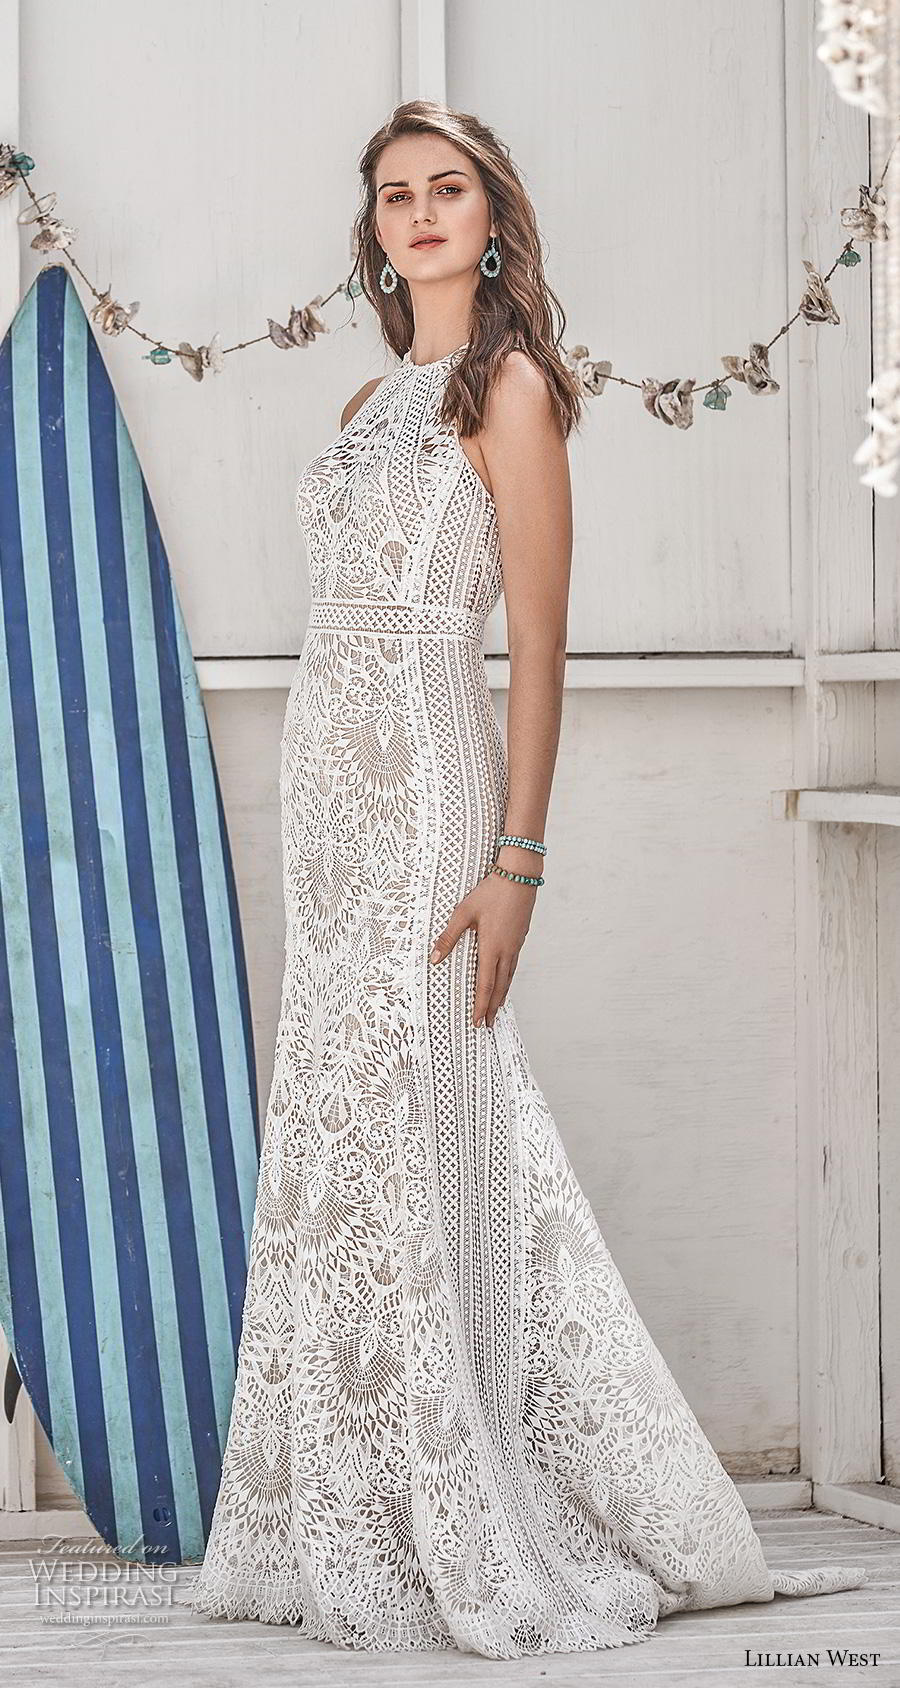 Lillian West Spring 2019 Wedding Dresses Wedding Inspirasi